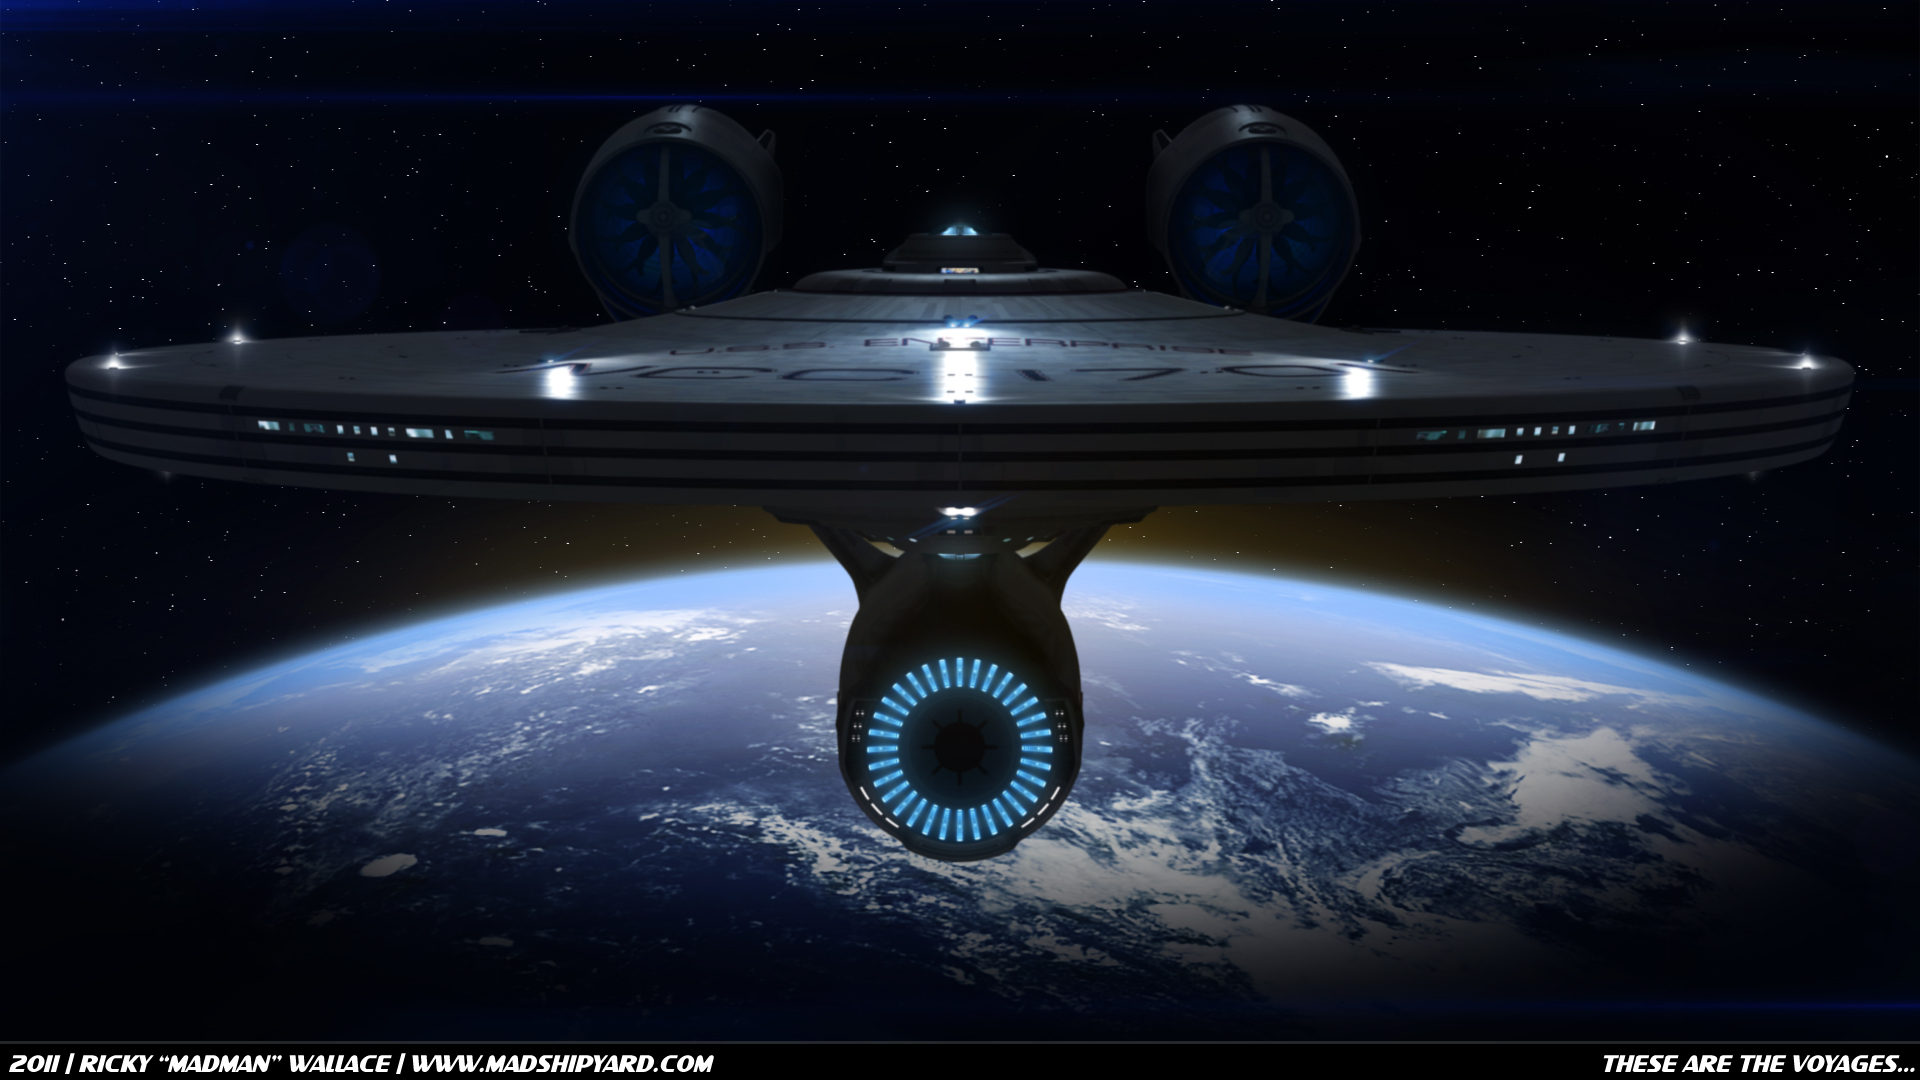 Uss Vengeance Wallpaper The USS Enterprise departing